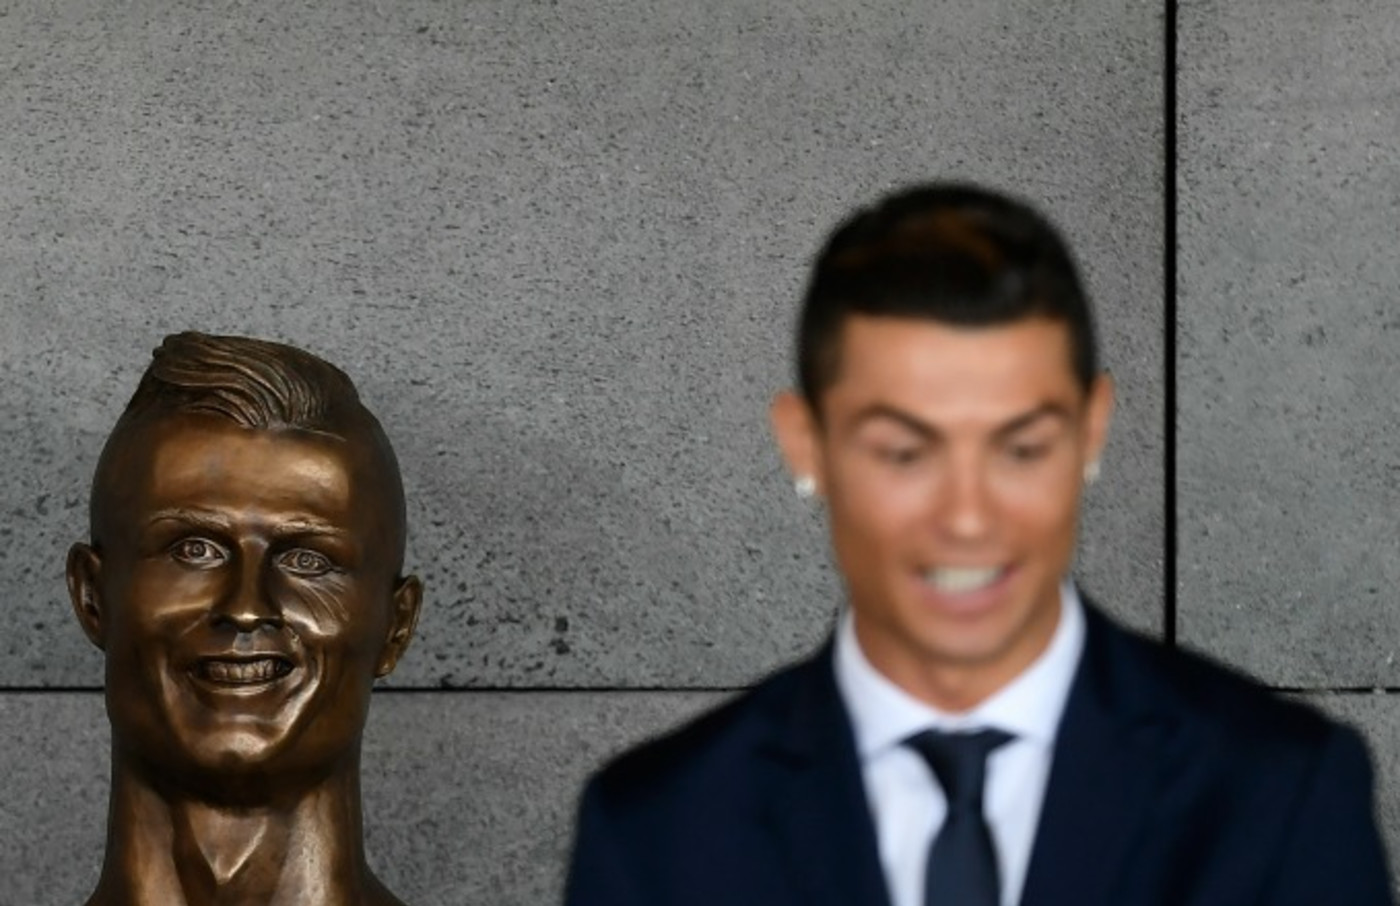 Cristiano Ronaldo stands in front of his statue.